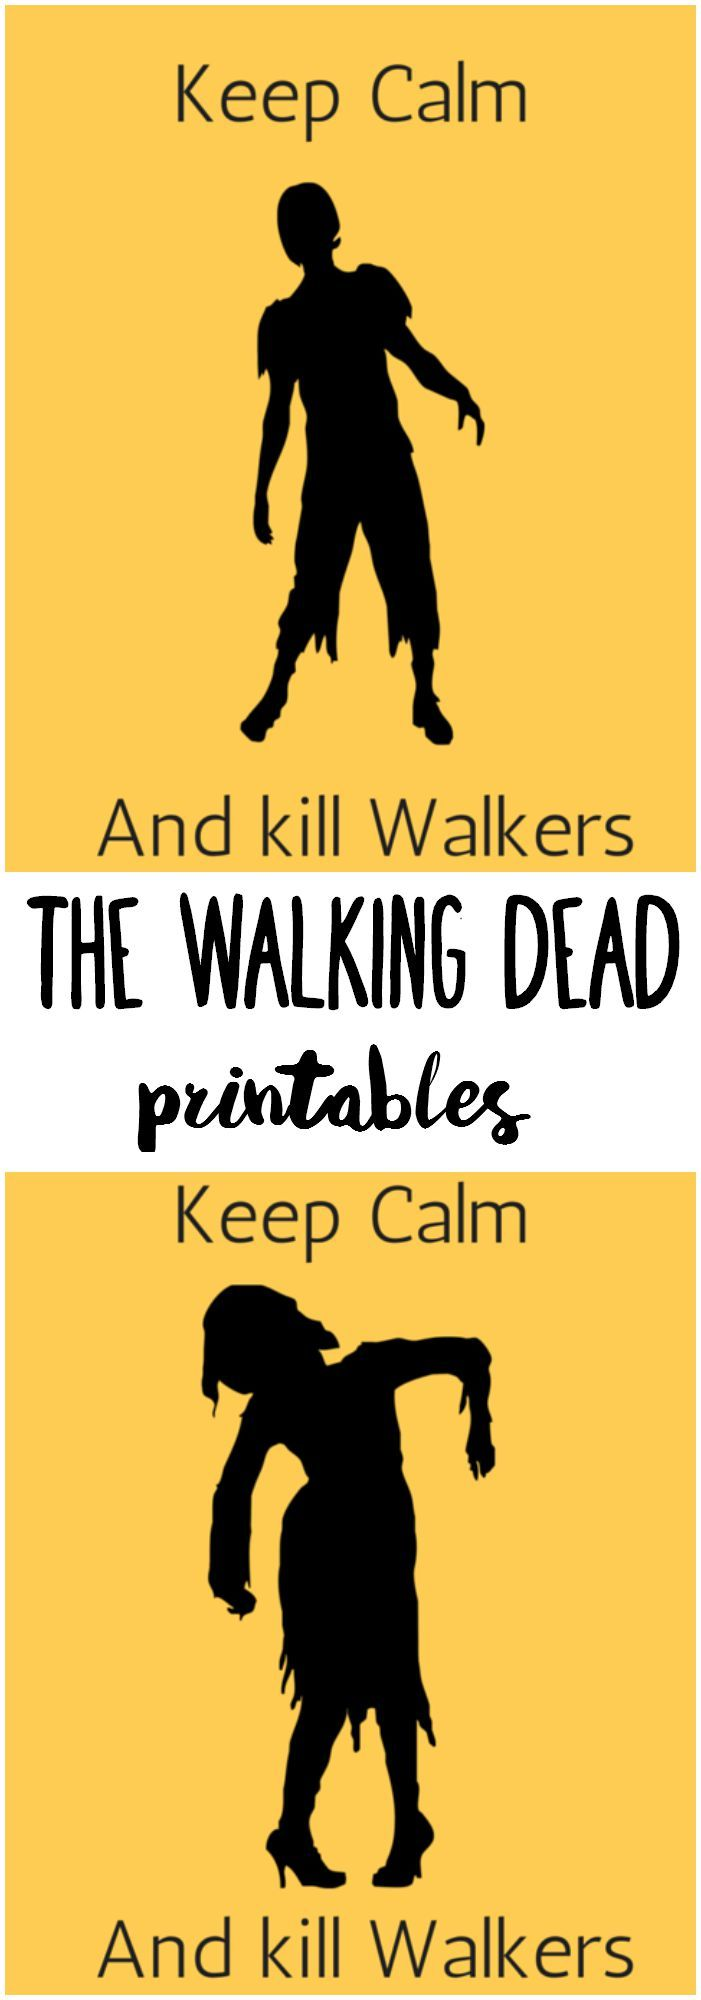 Are you a fan of The Walking Dead? I have a set of free The Walking Dead printables that you may want to take a look at!